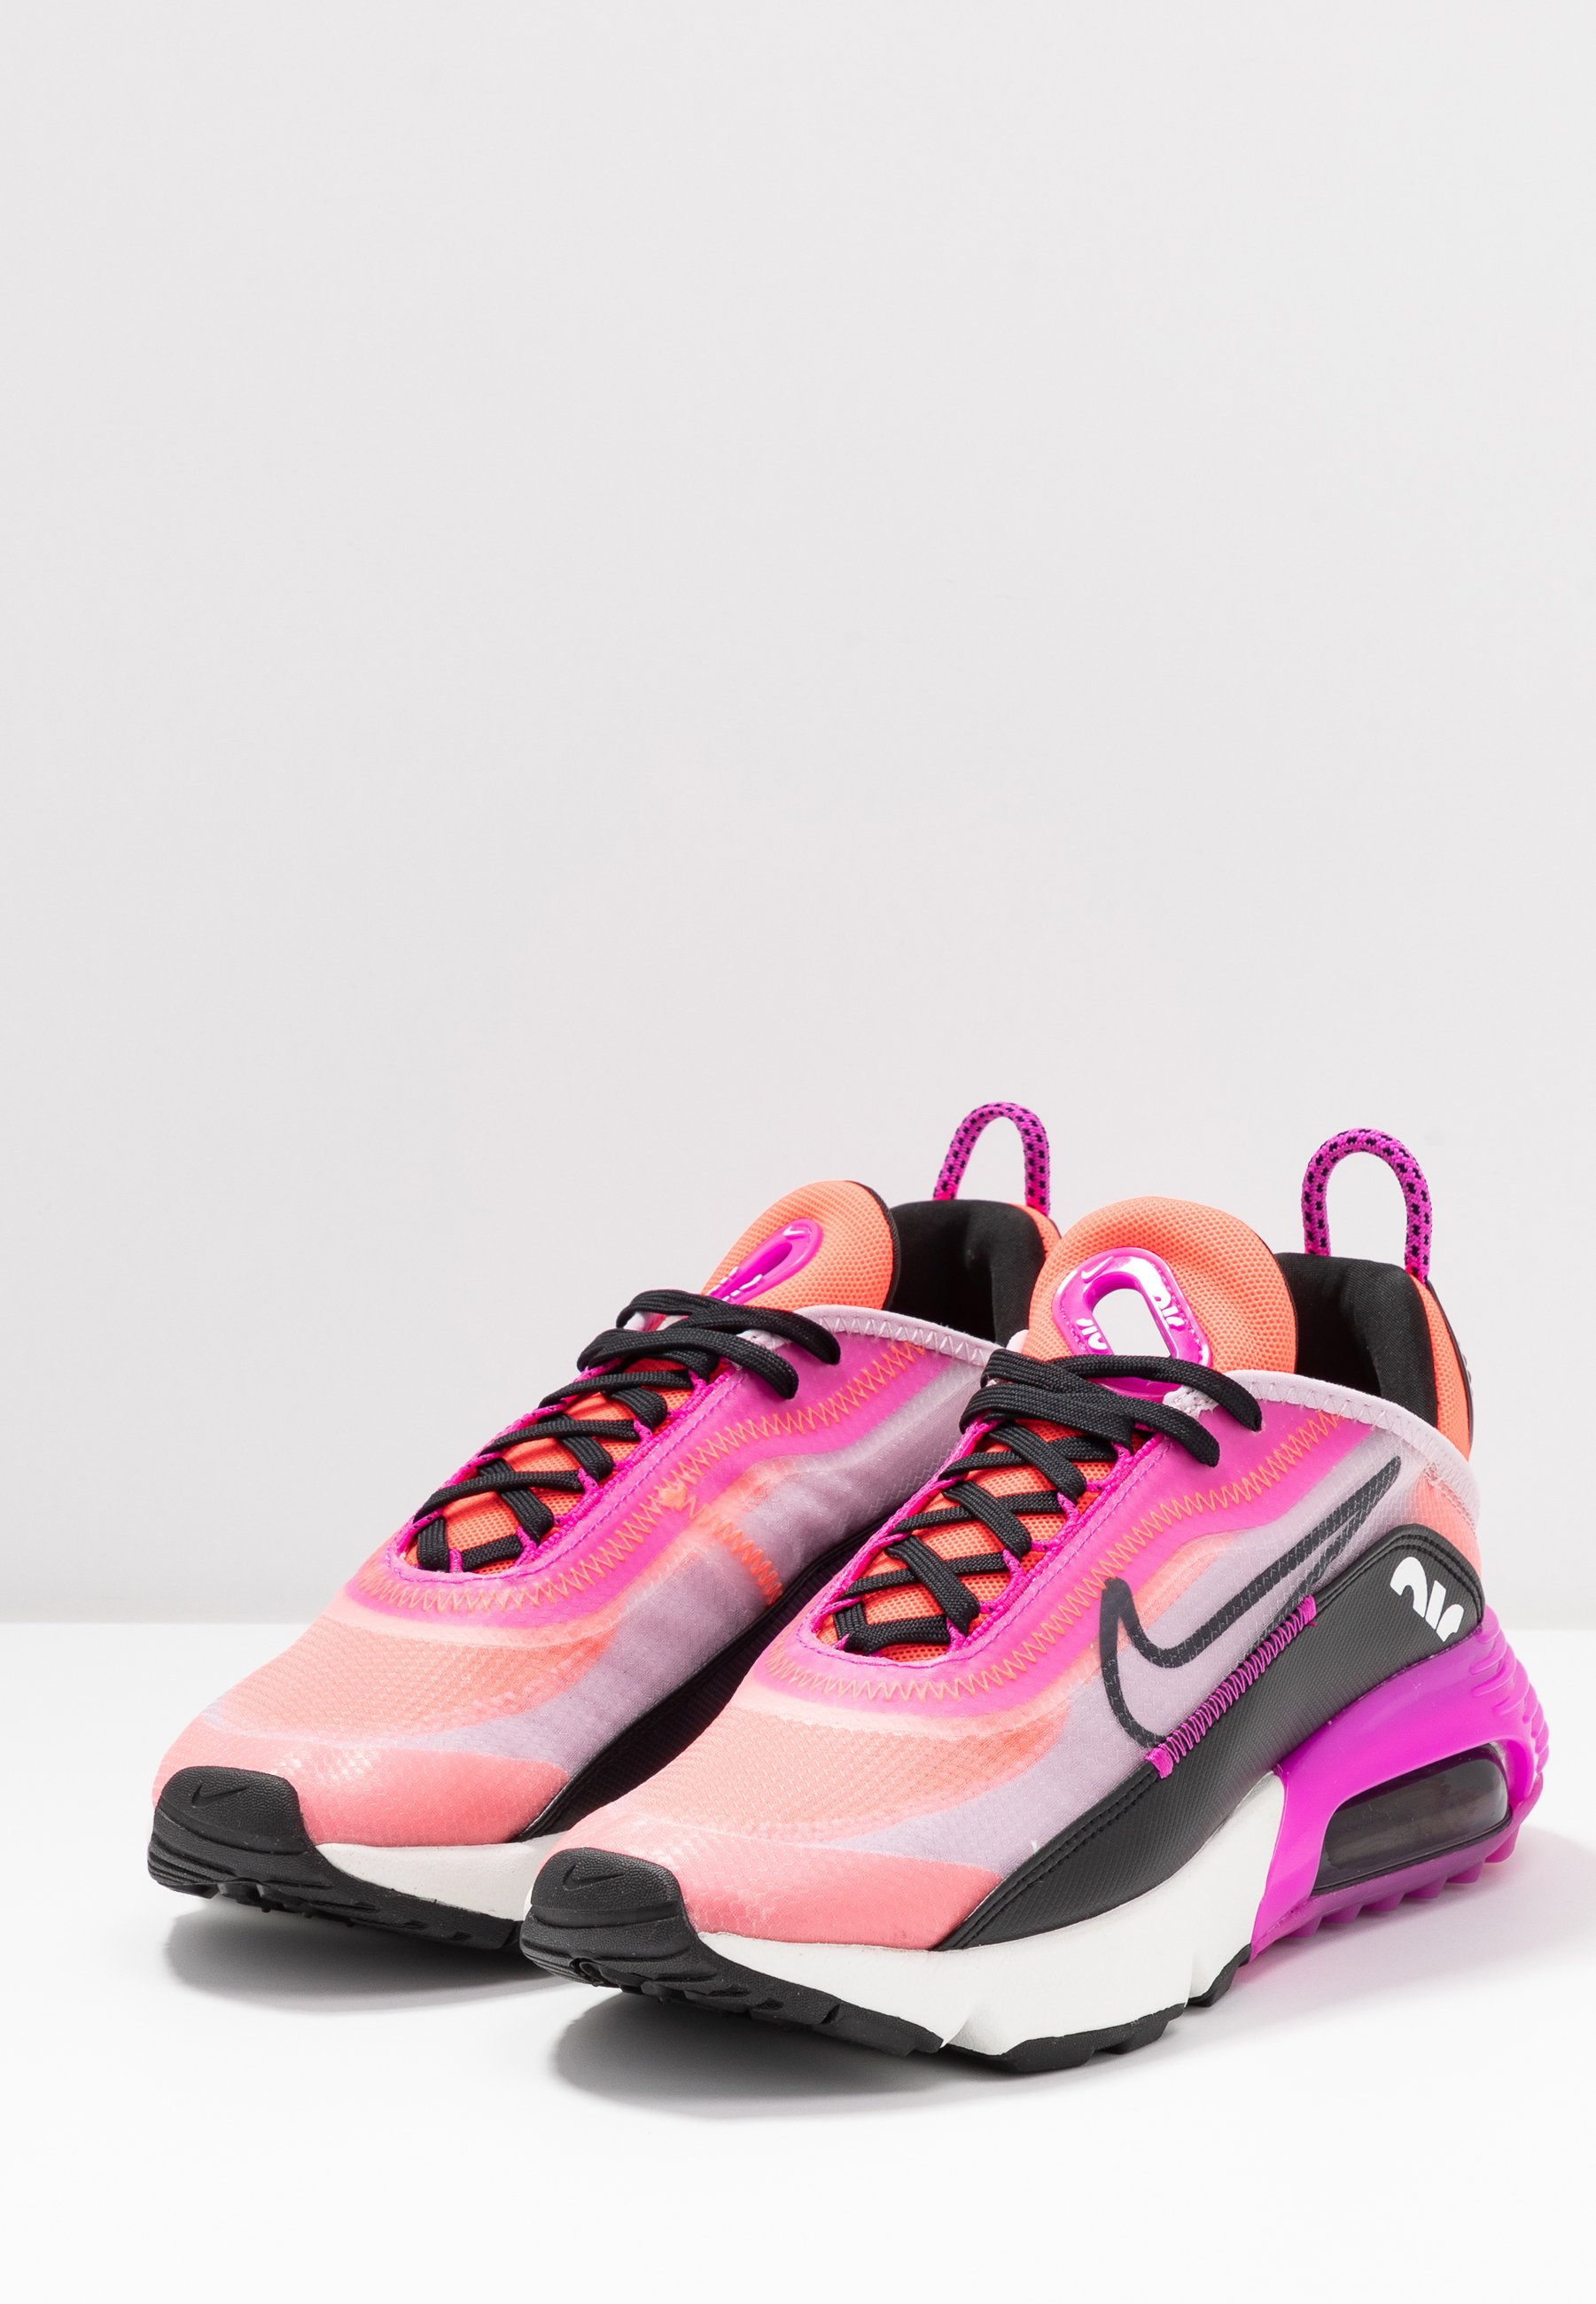 AIR MAX 2090 Sneaker low iced lilacblackfire pinkflash crimsonsummit whiteanthracite